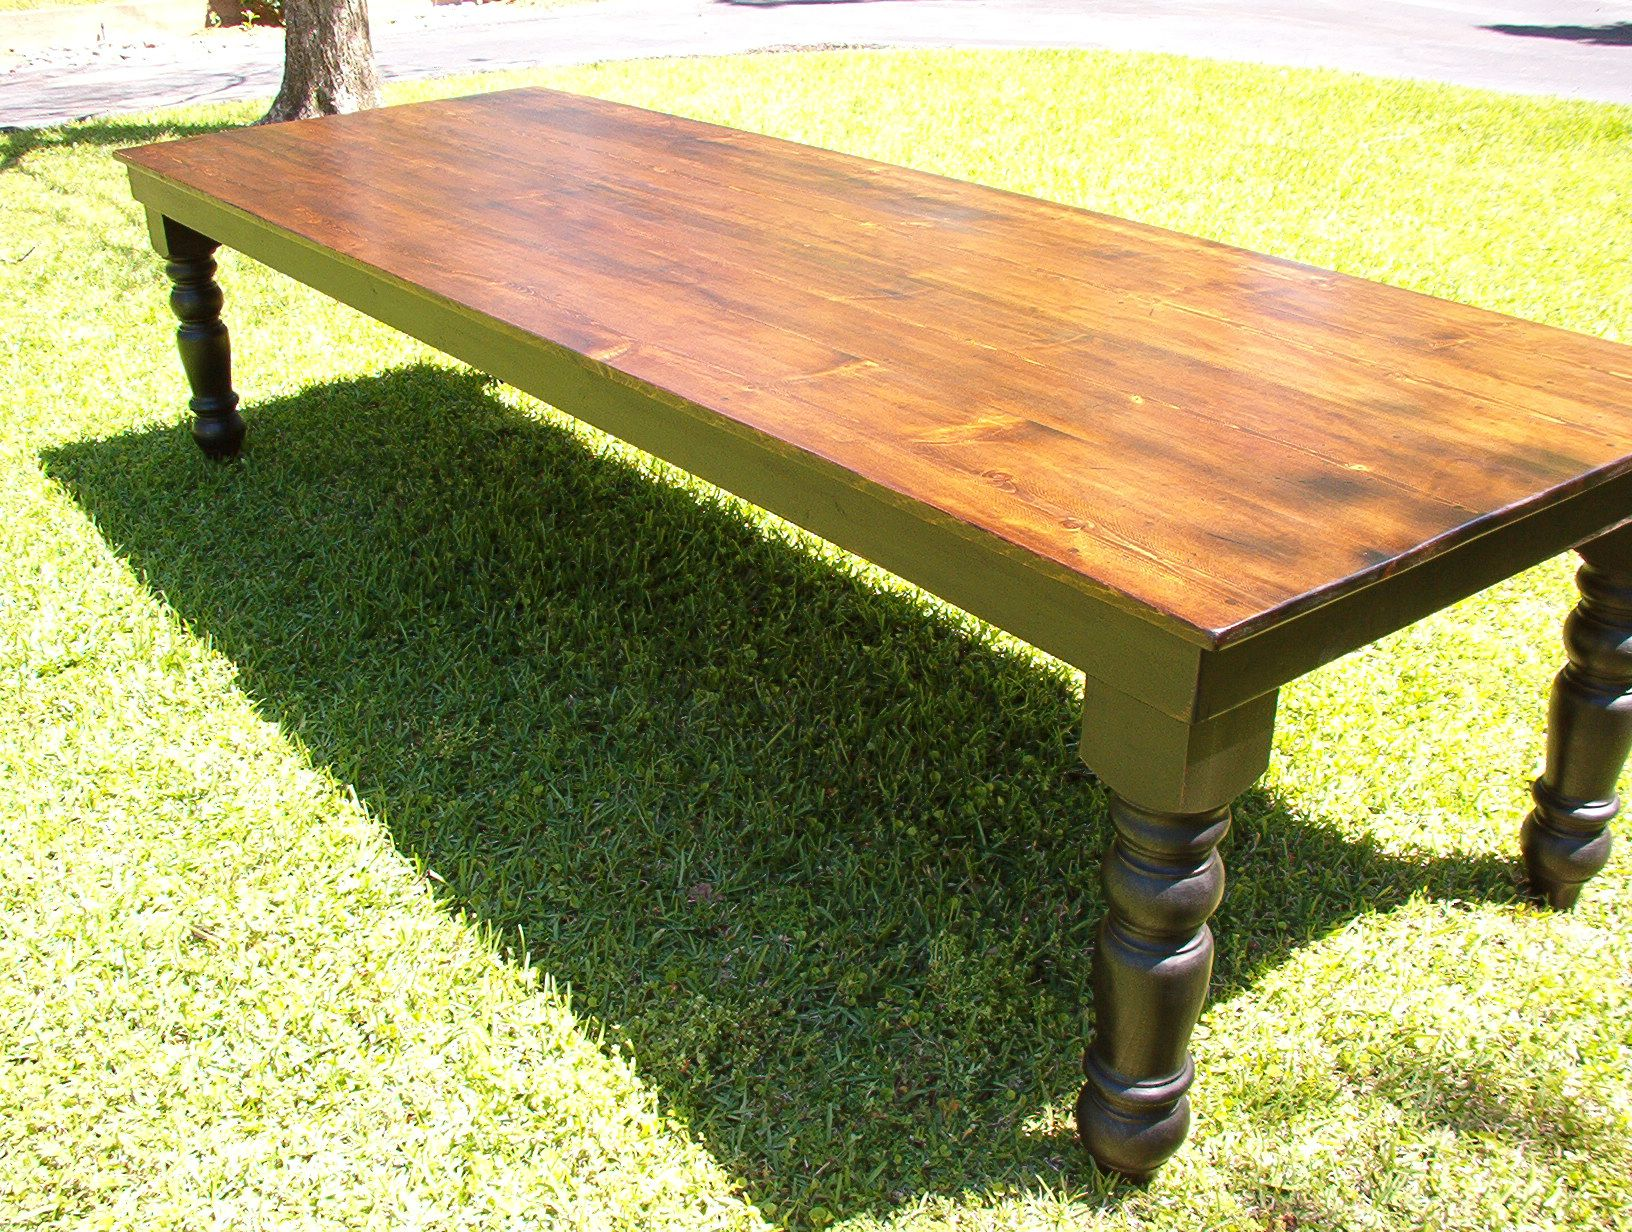 9 Ft Long Harvest Table With Large Turned Legs By Hinz57.com